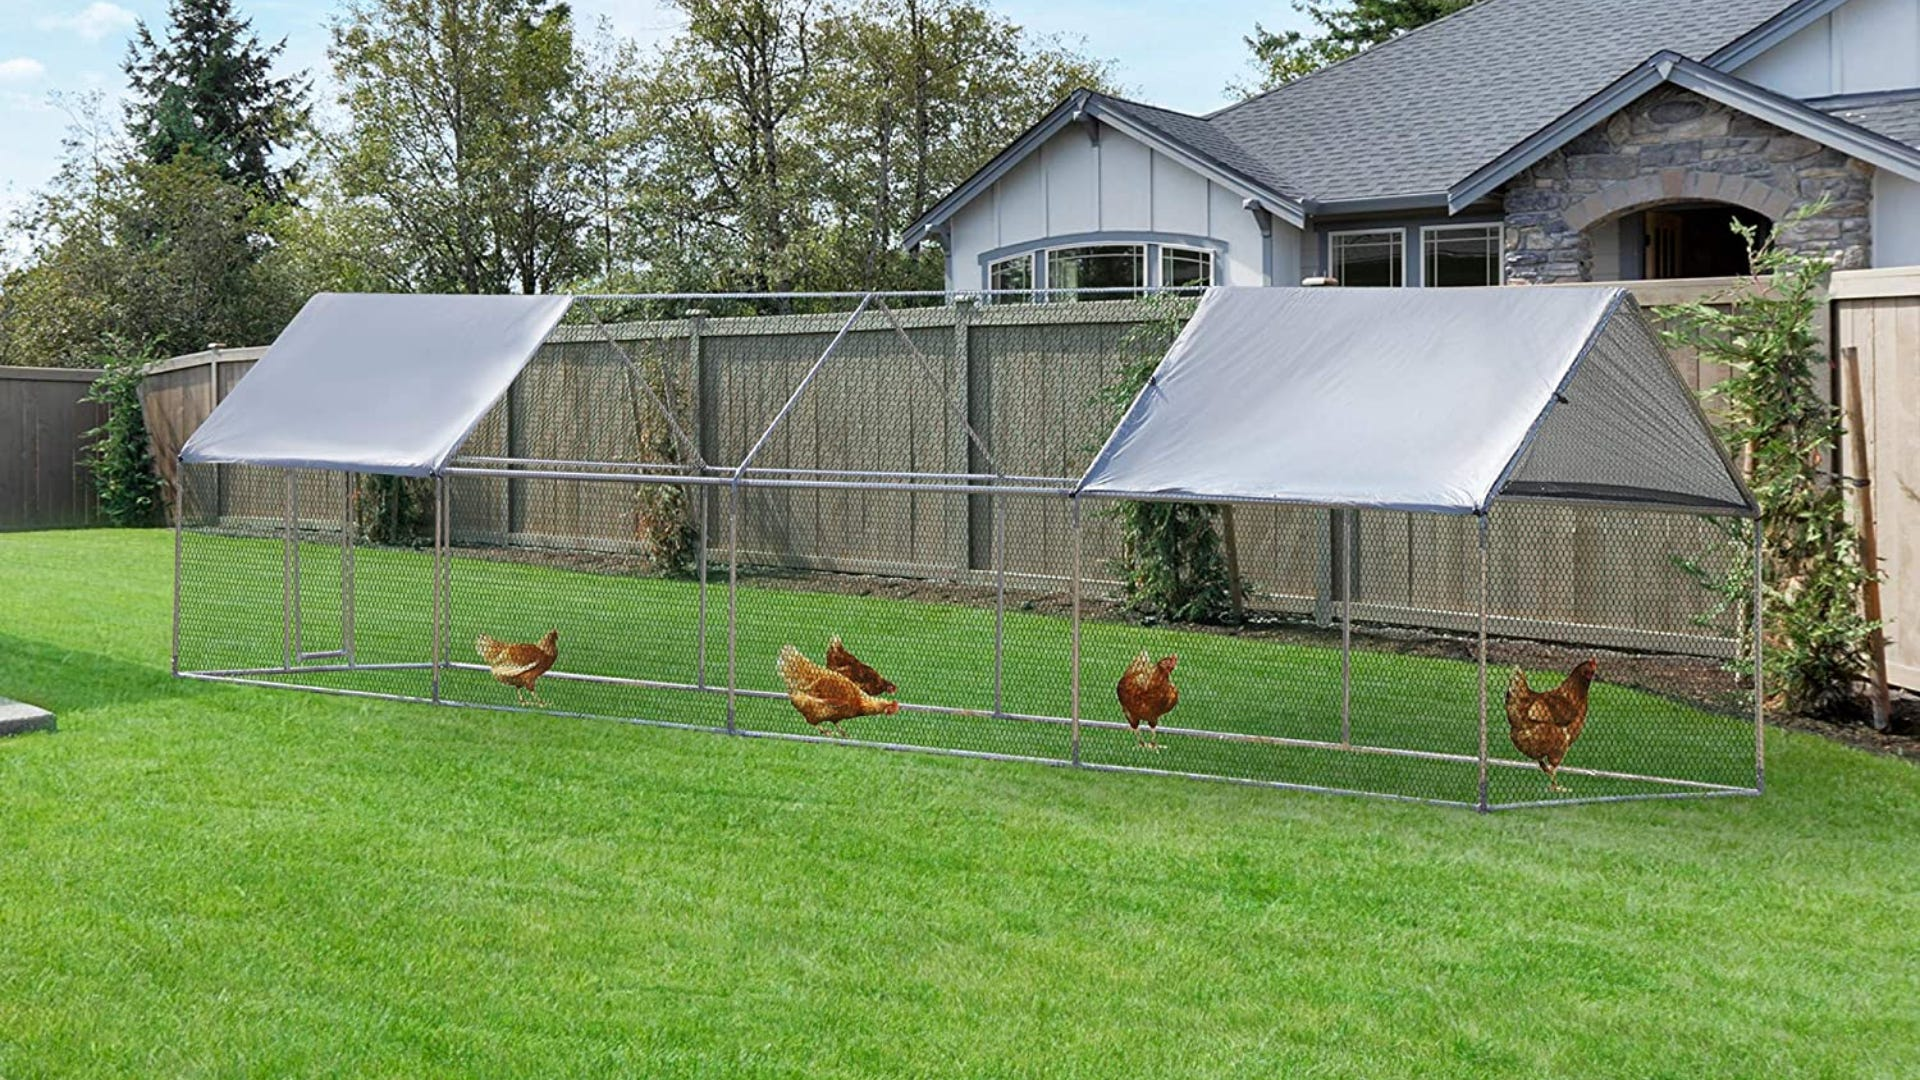 Large chicken playpen set up outside on green grass.